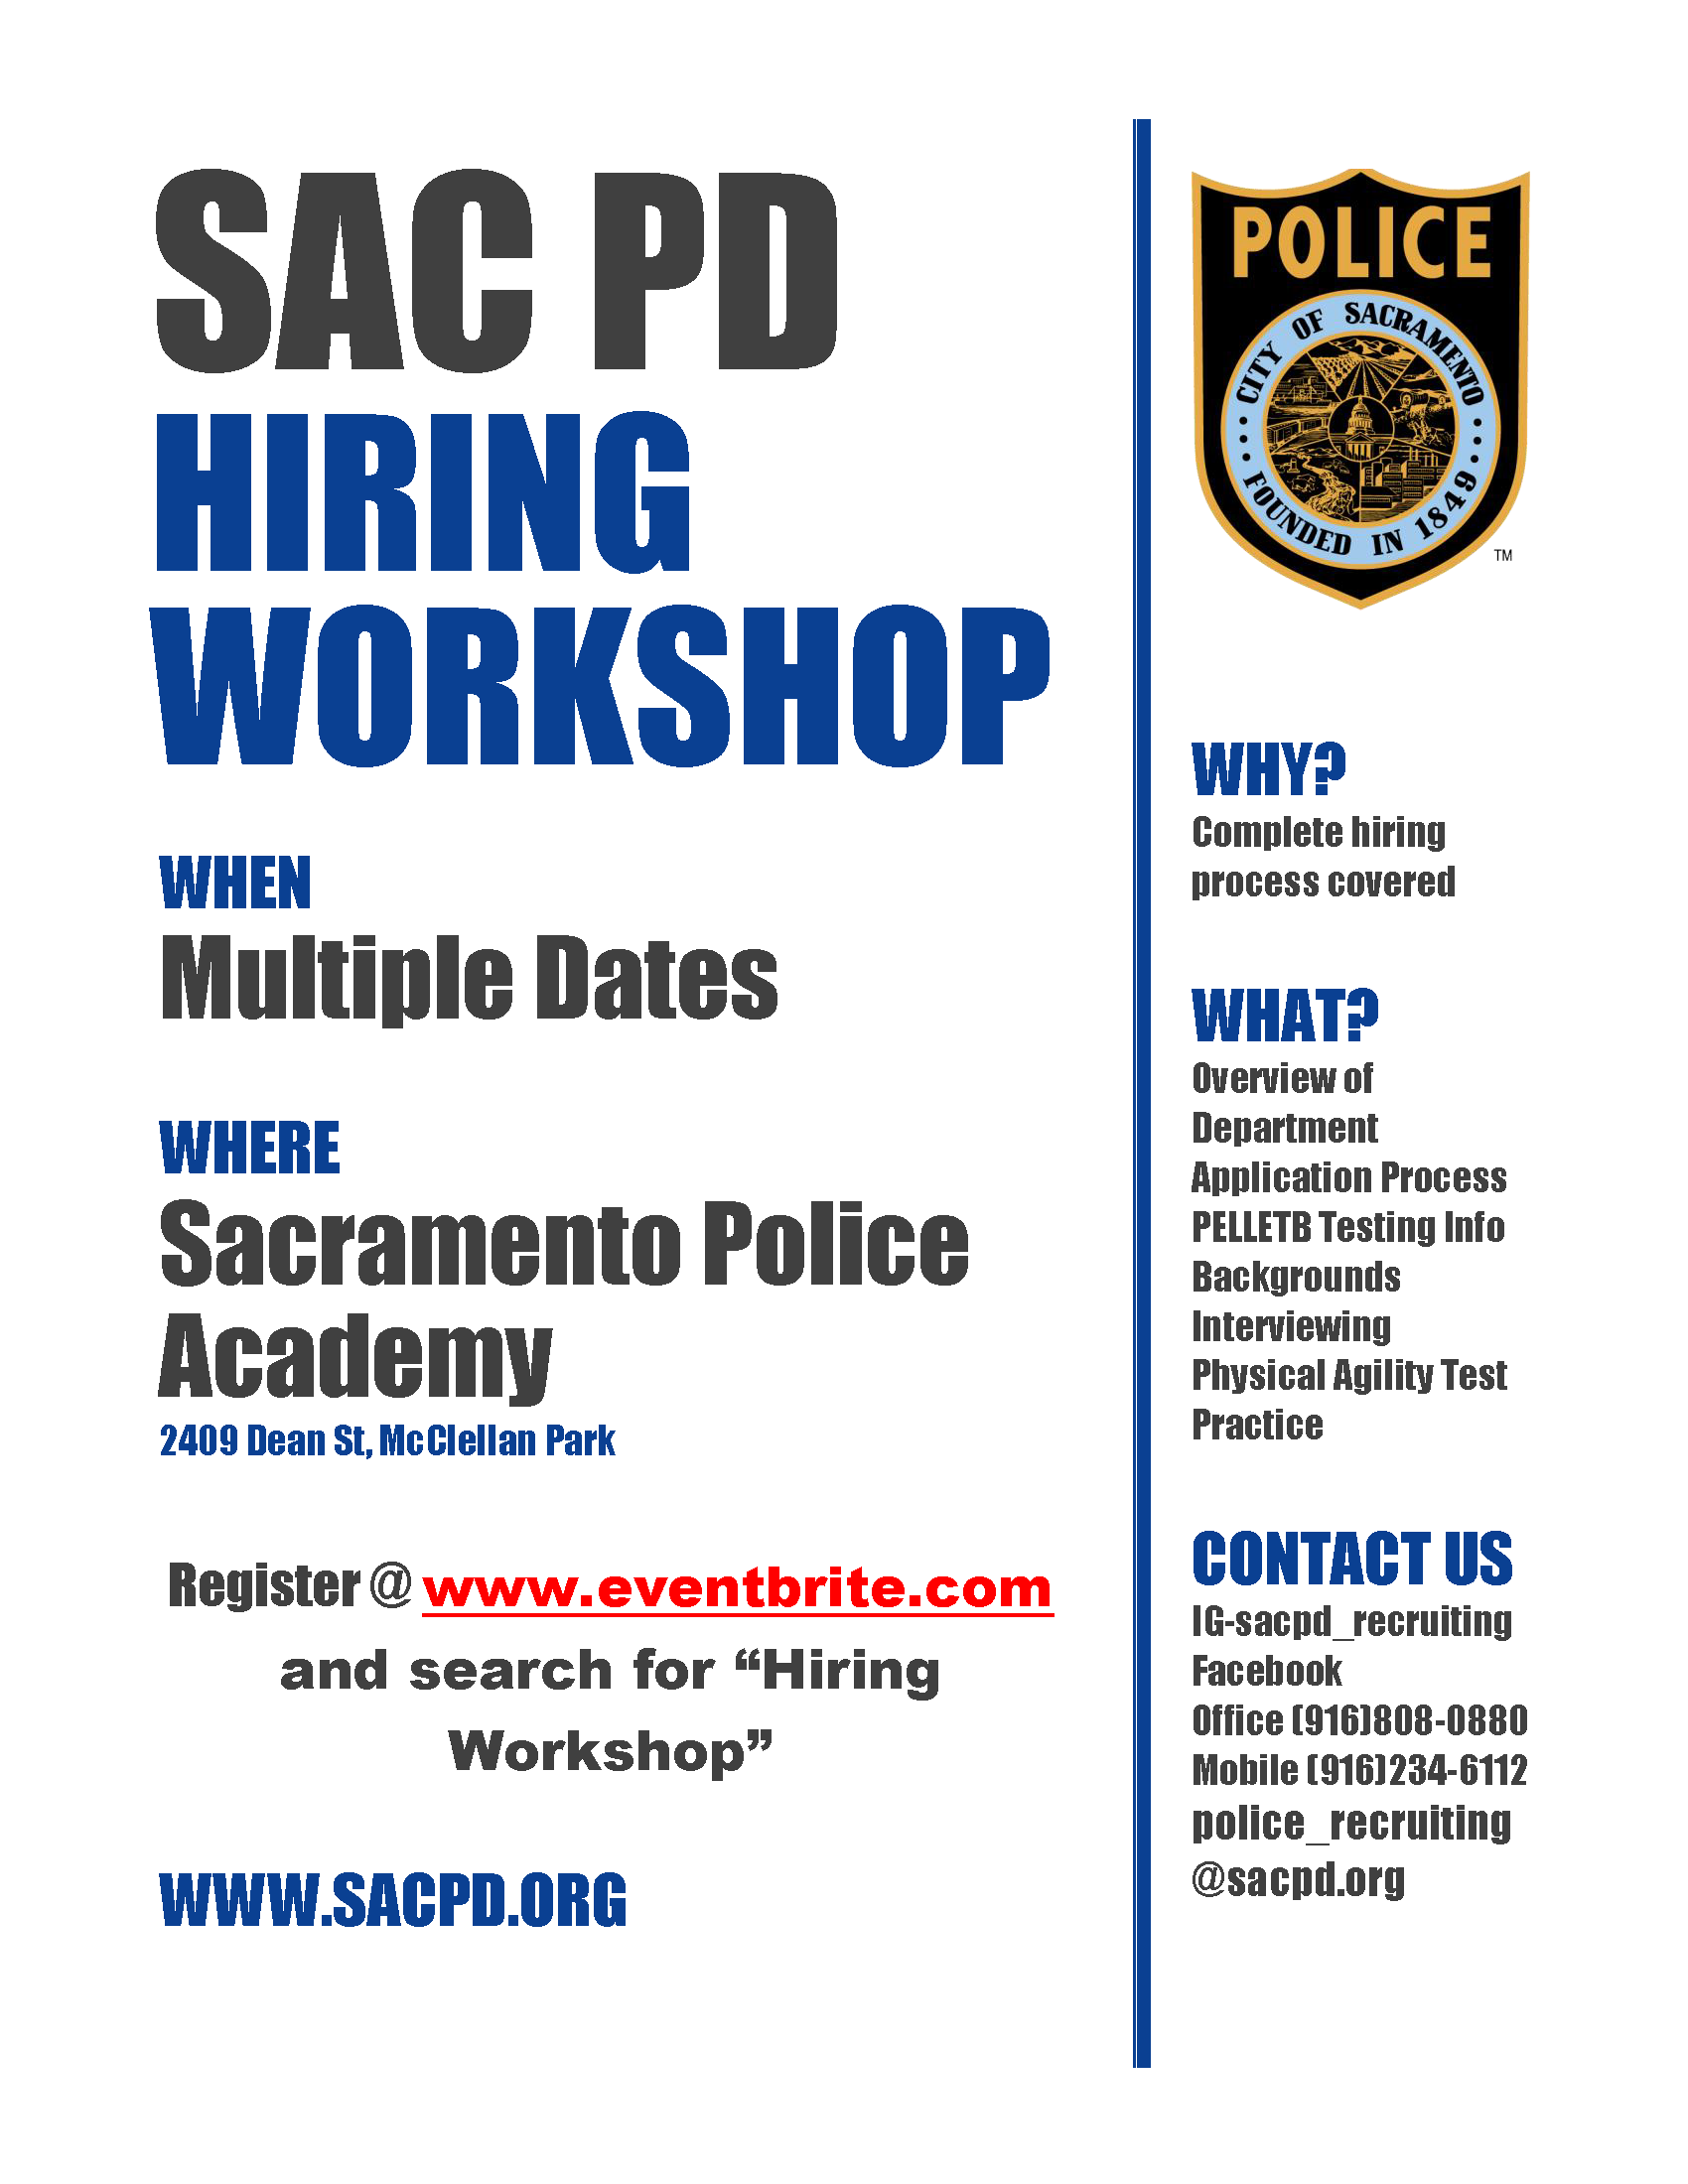 SacPD Hiring Workshop-Image